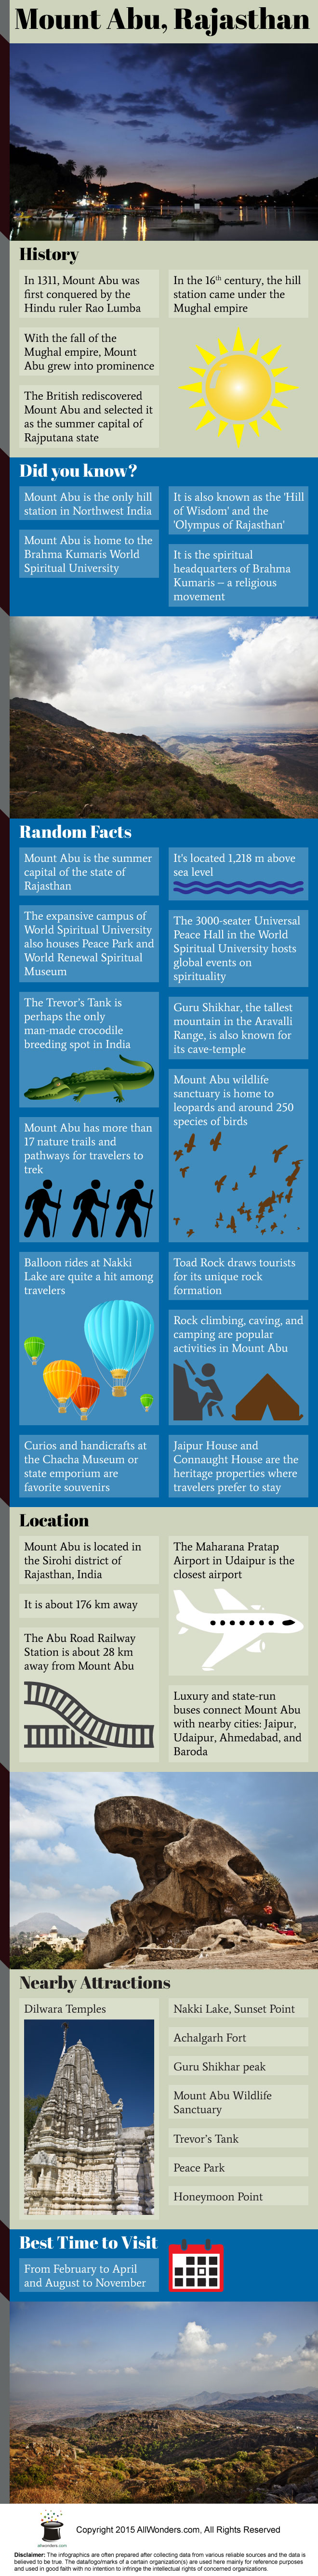 Mount Abu Infographic